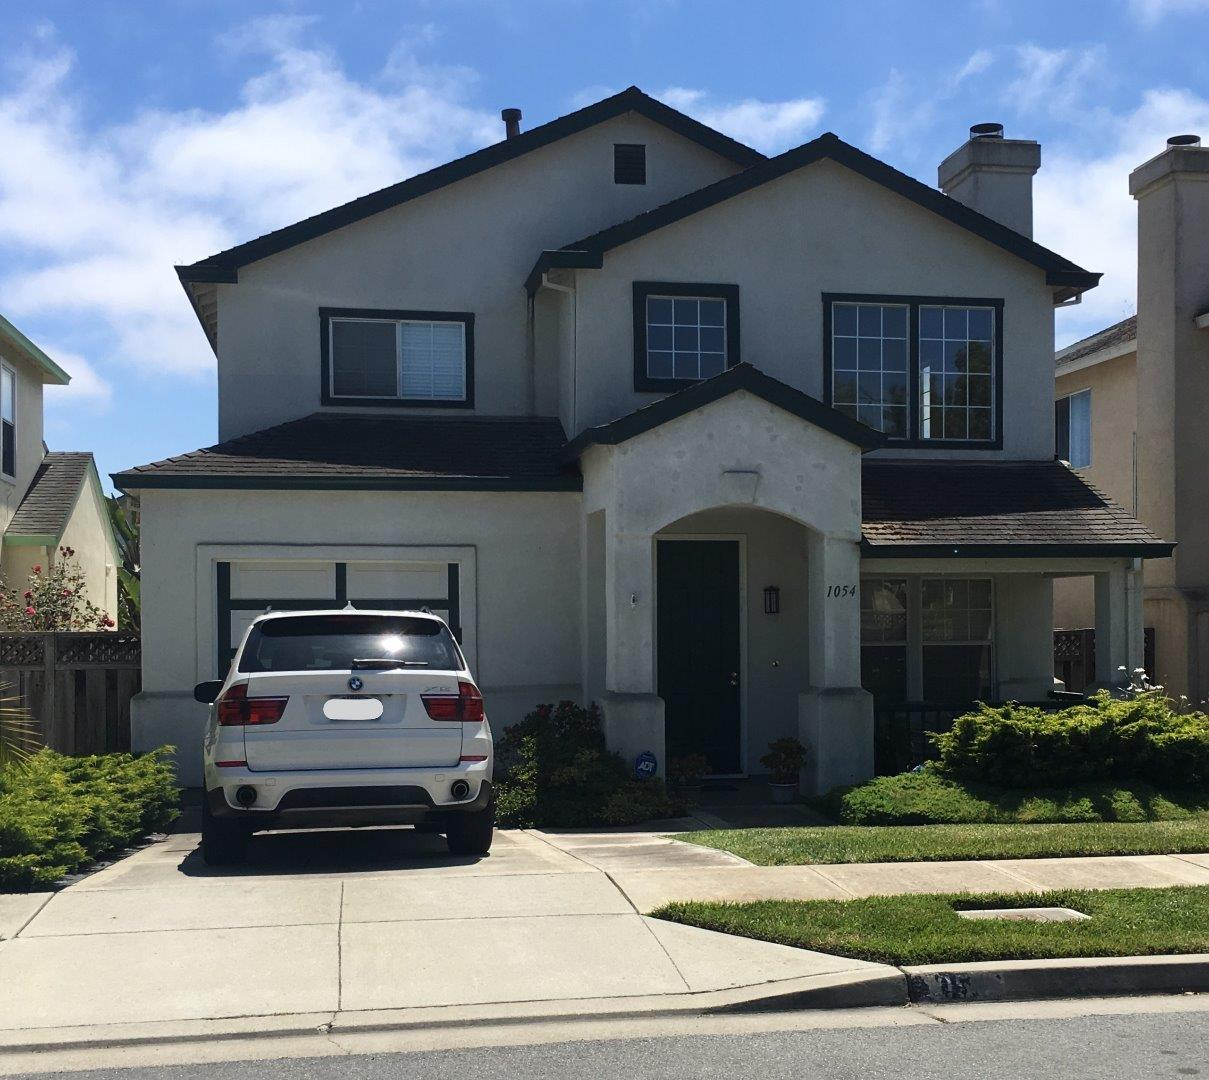 Blackhorse Real Estate specializes in Salinas CA Homes, Real